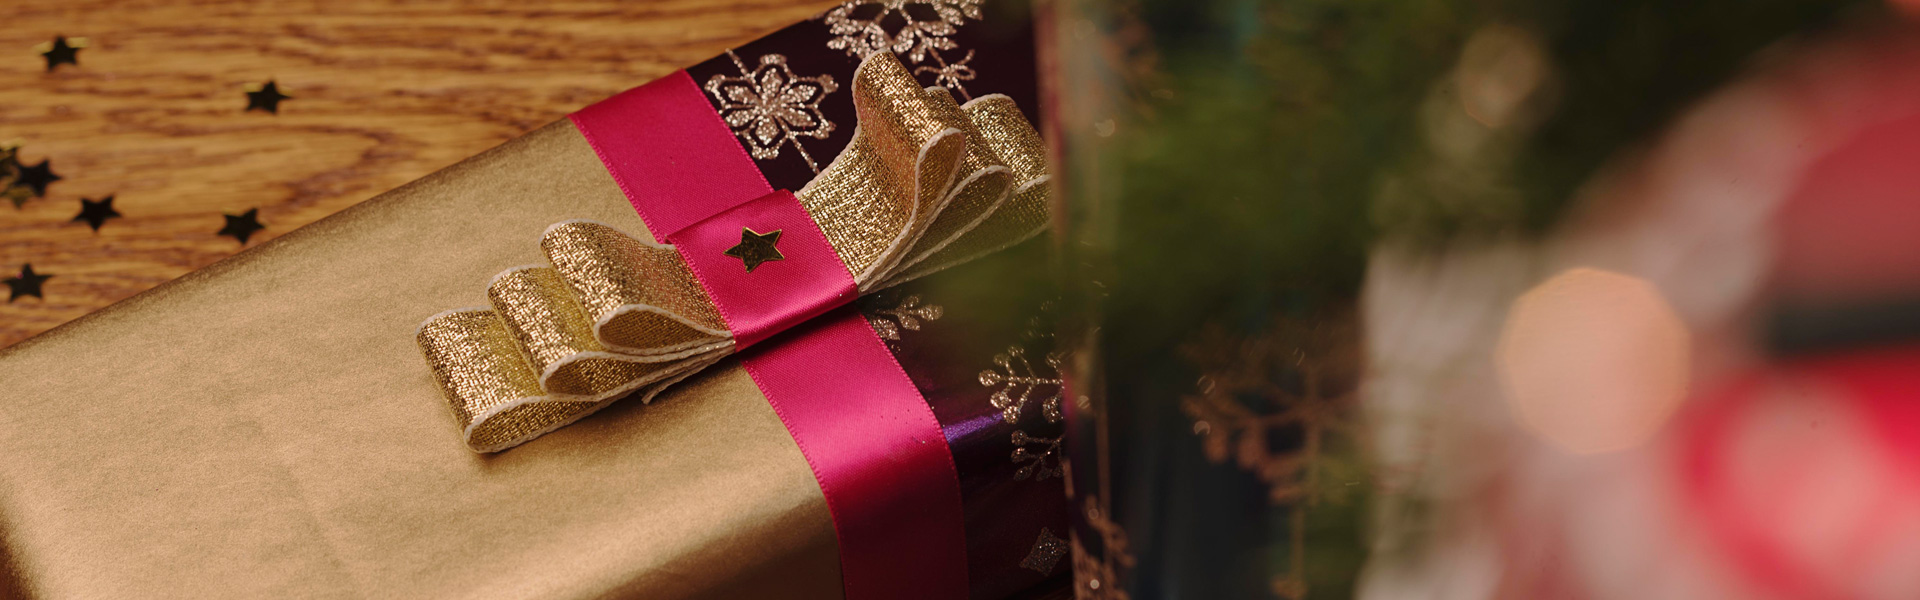 Luxurious Jewels Christmas Gift Wrap